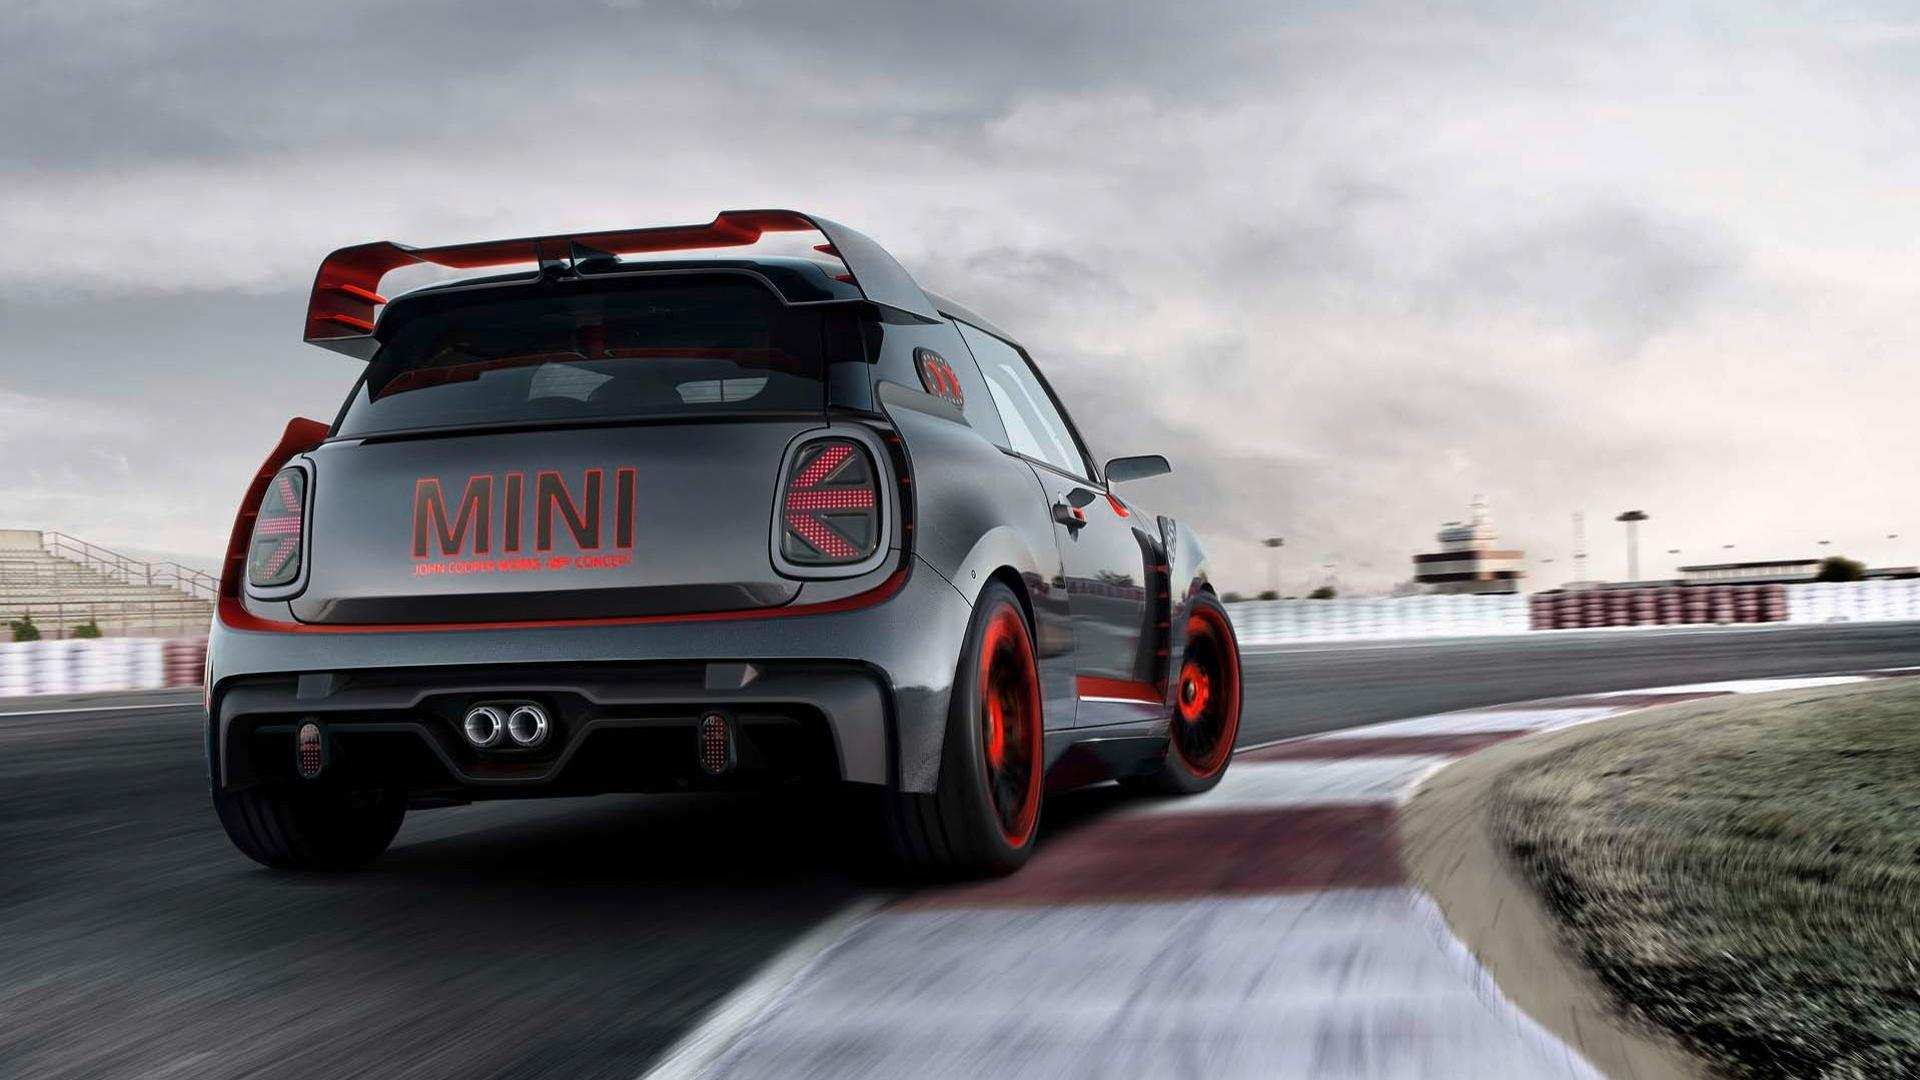 15 All New 2020 Hd Mini 2017 Wallpaper for 2020 Hd Mini 2017